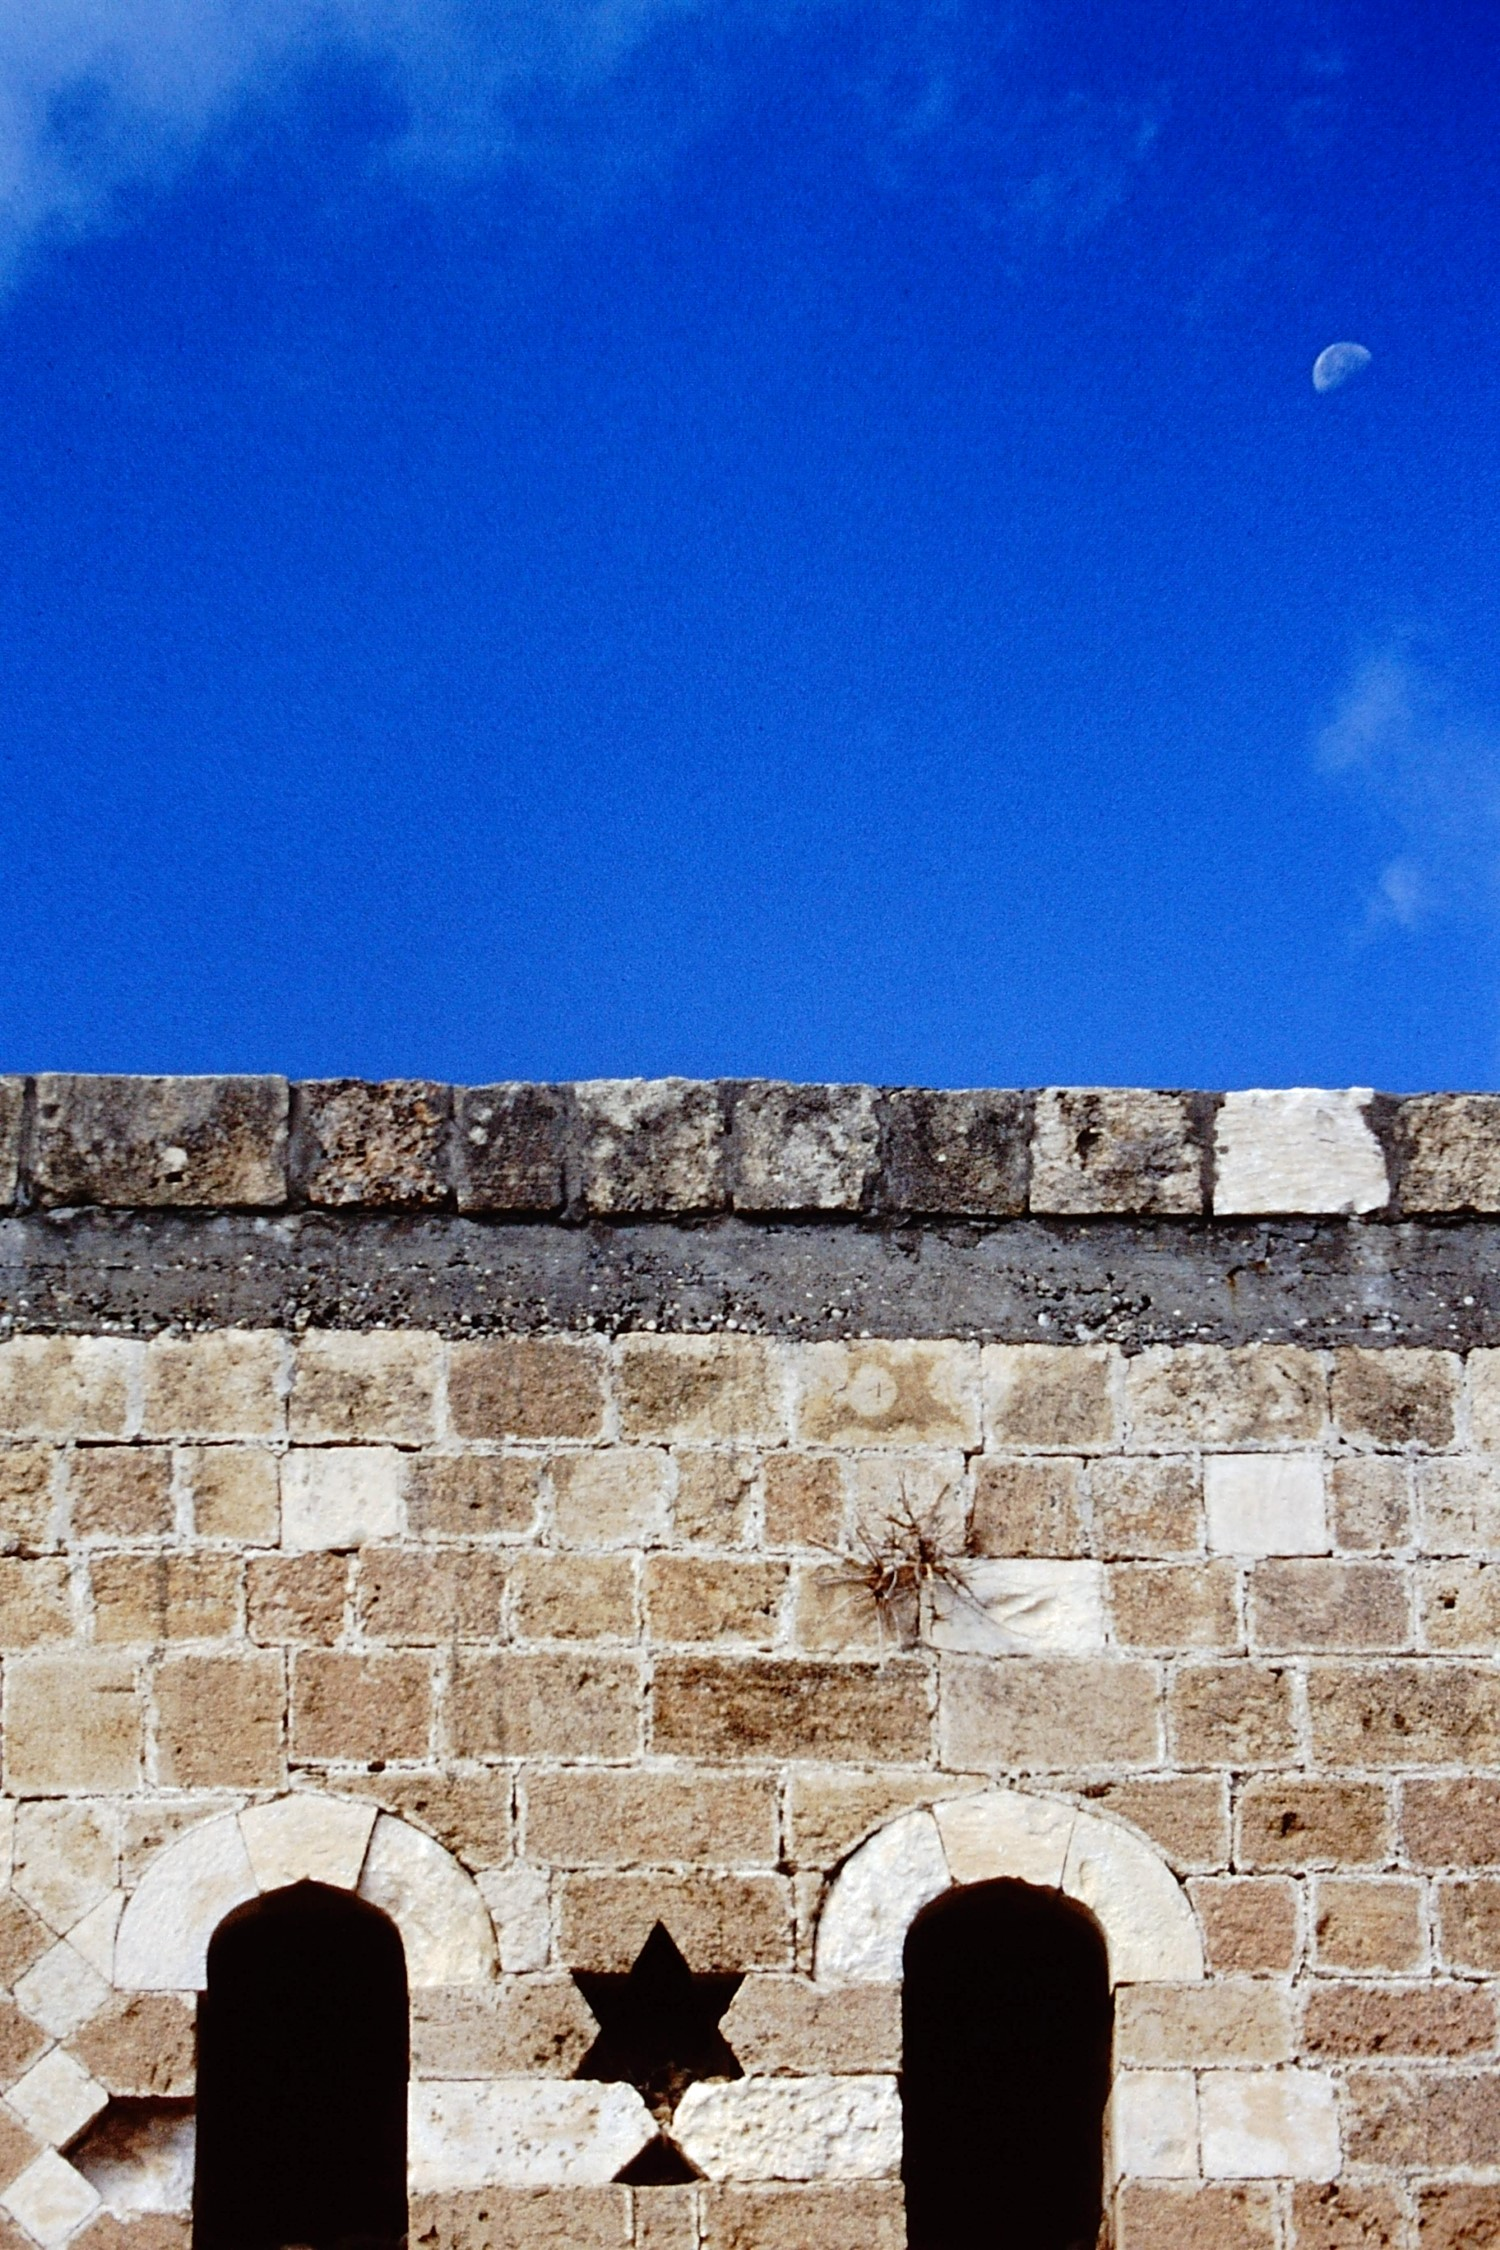 Stone wall and moon in the sky